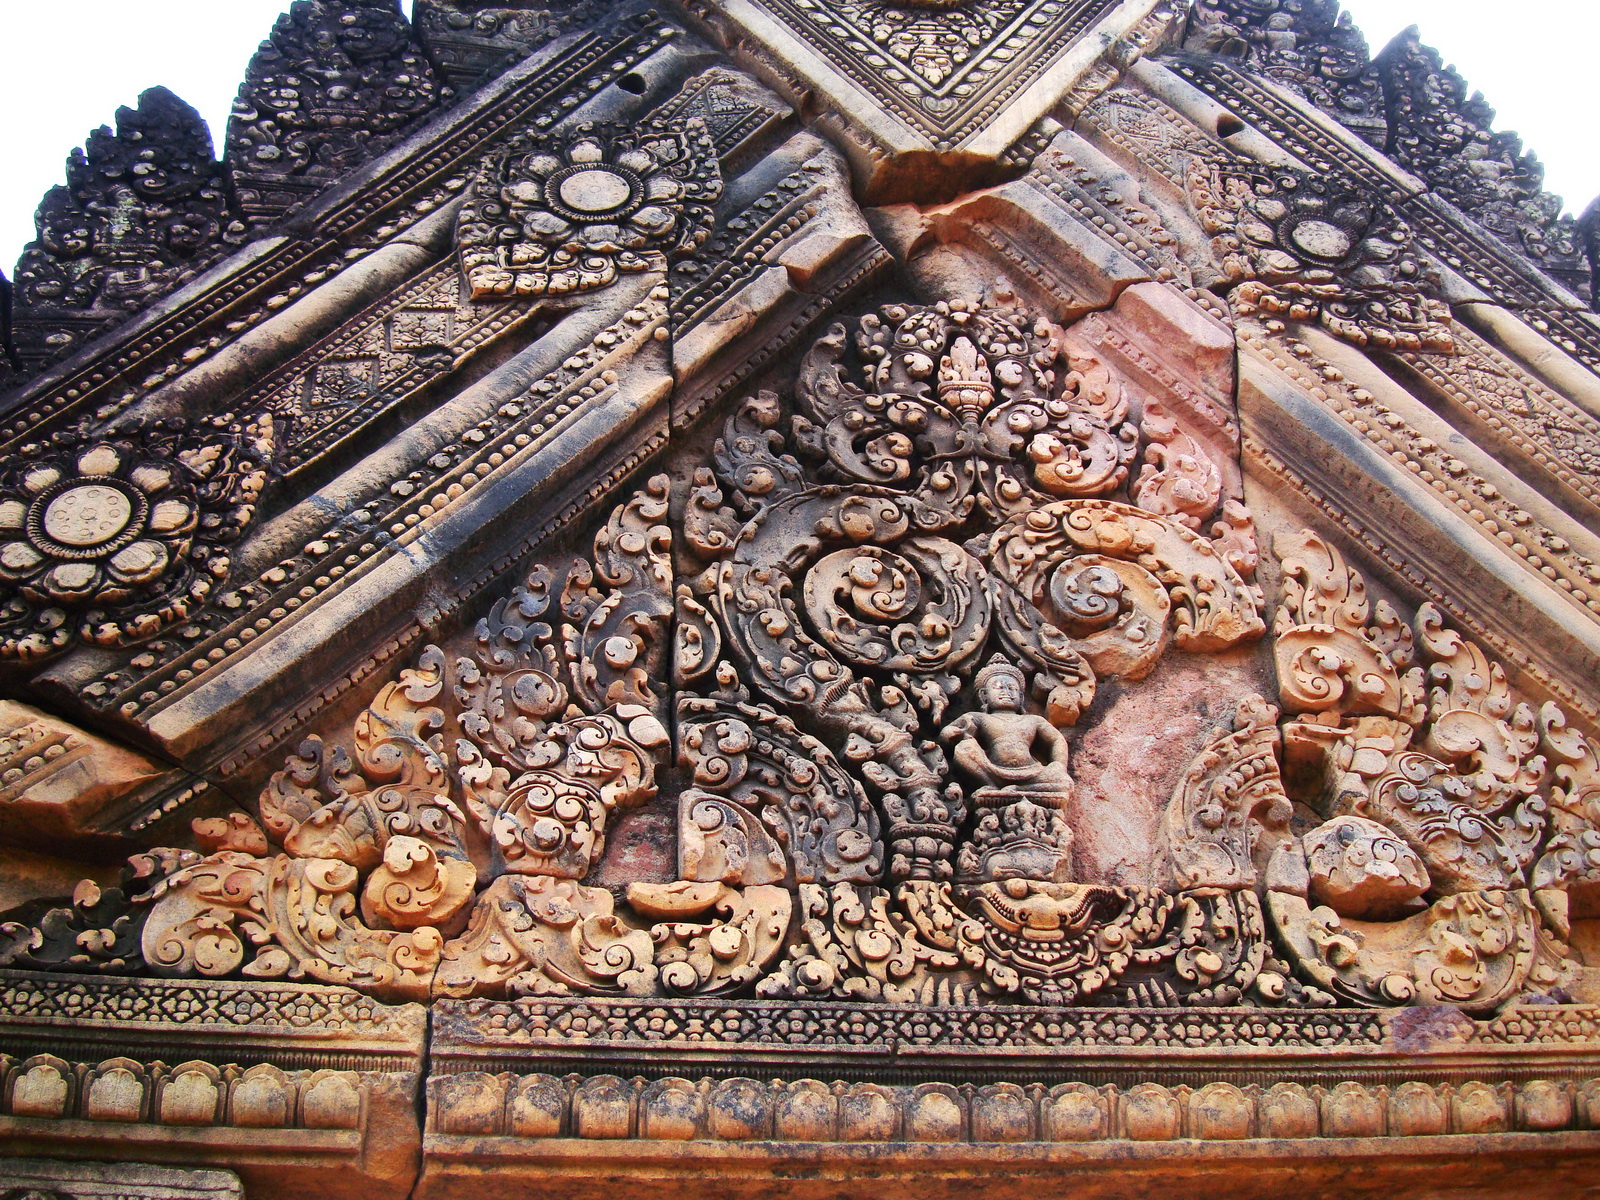 Gate arch carving of Kala a mythical creature of the god Siva 16